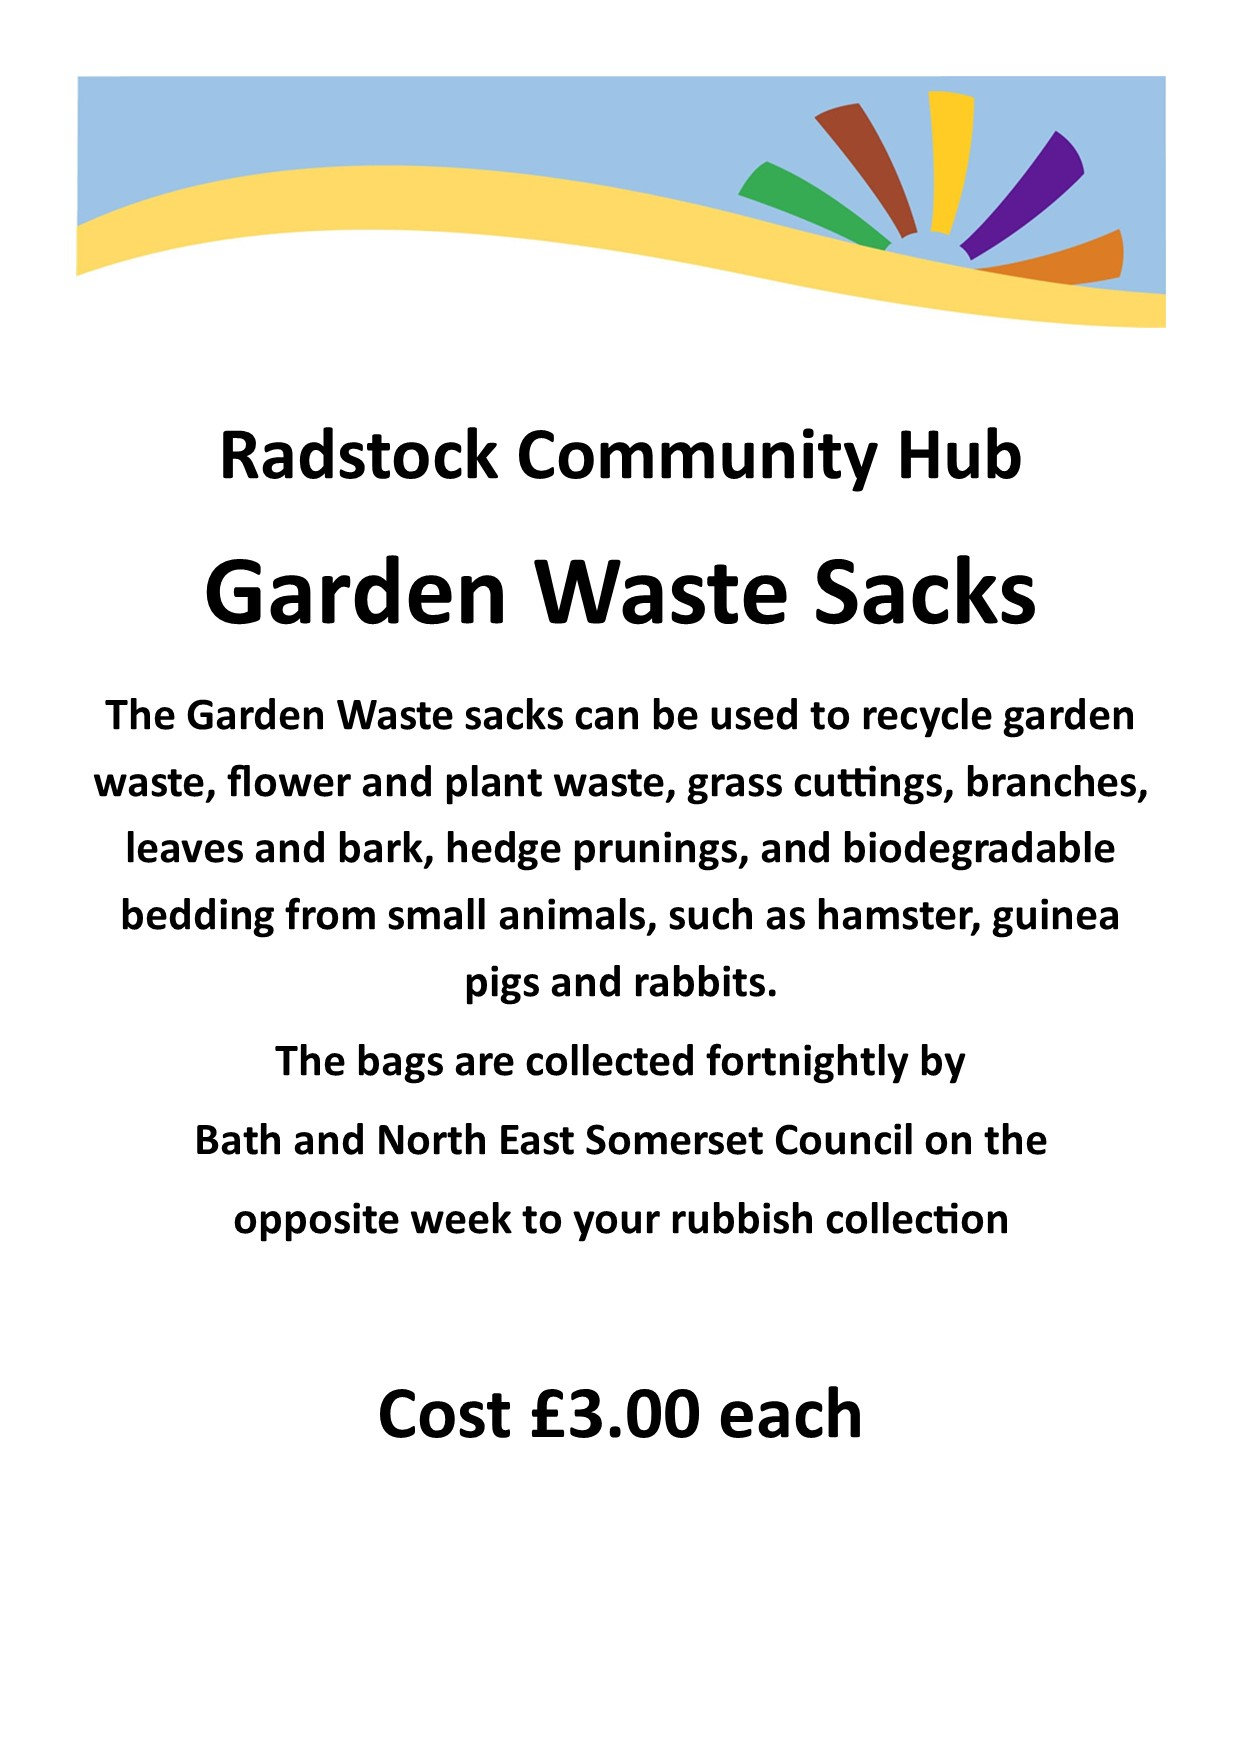 Garden Waste Sacks poster